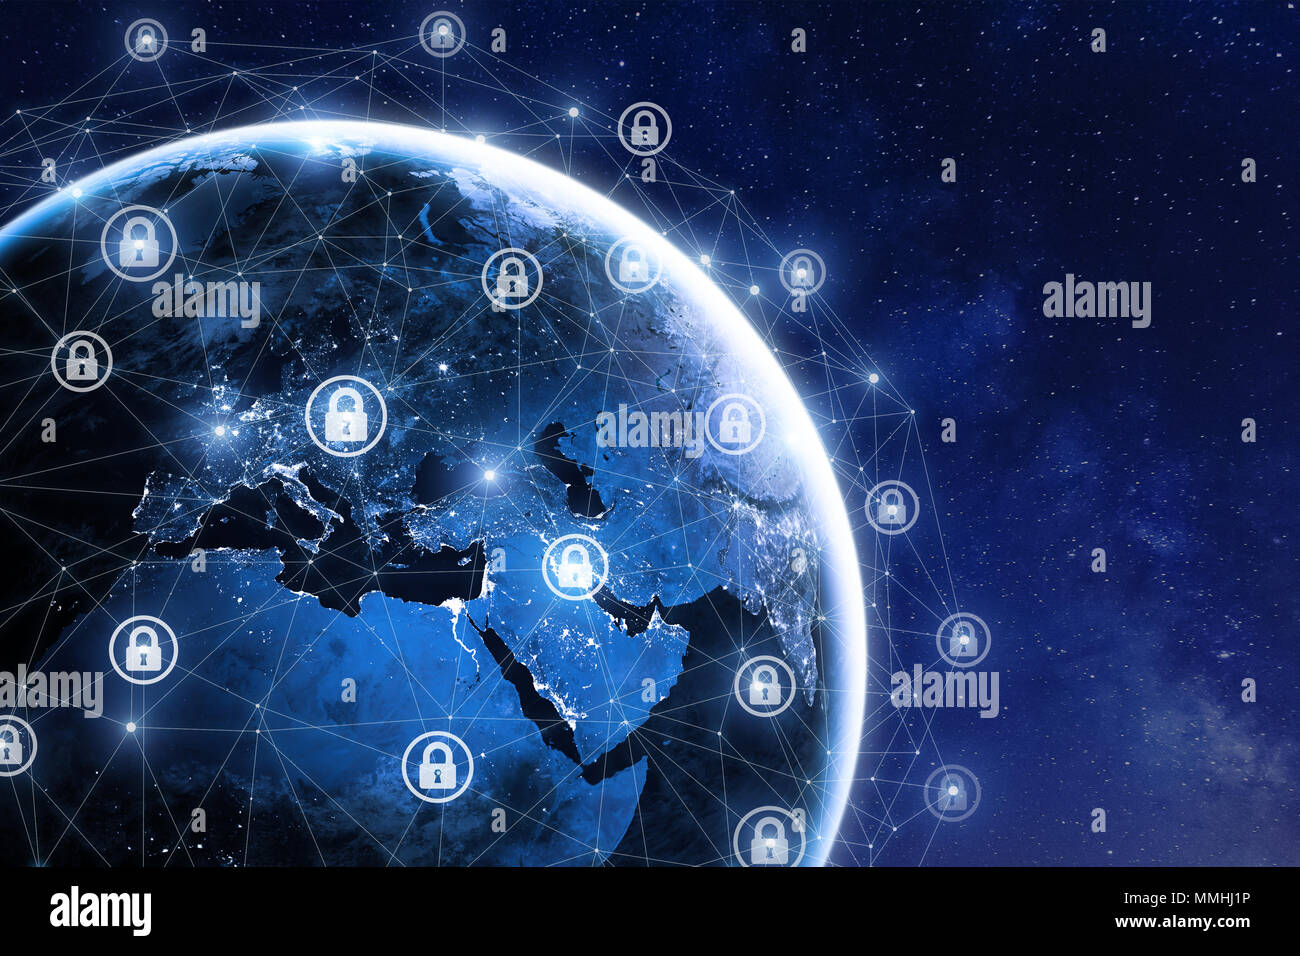 Cybersecurity and global communication, secure data network technology, cyberattack protection for worldwide connections, finance, IoT and cryptocurre - Stock Image